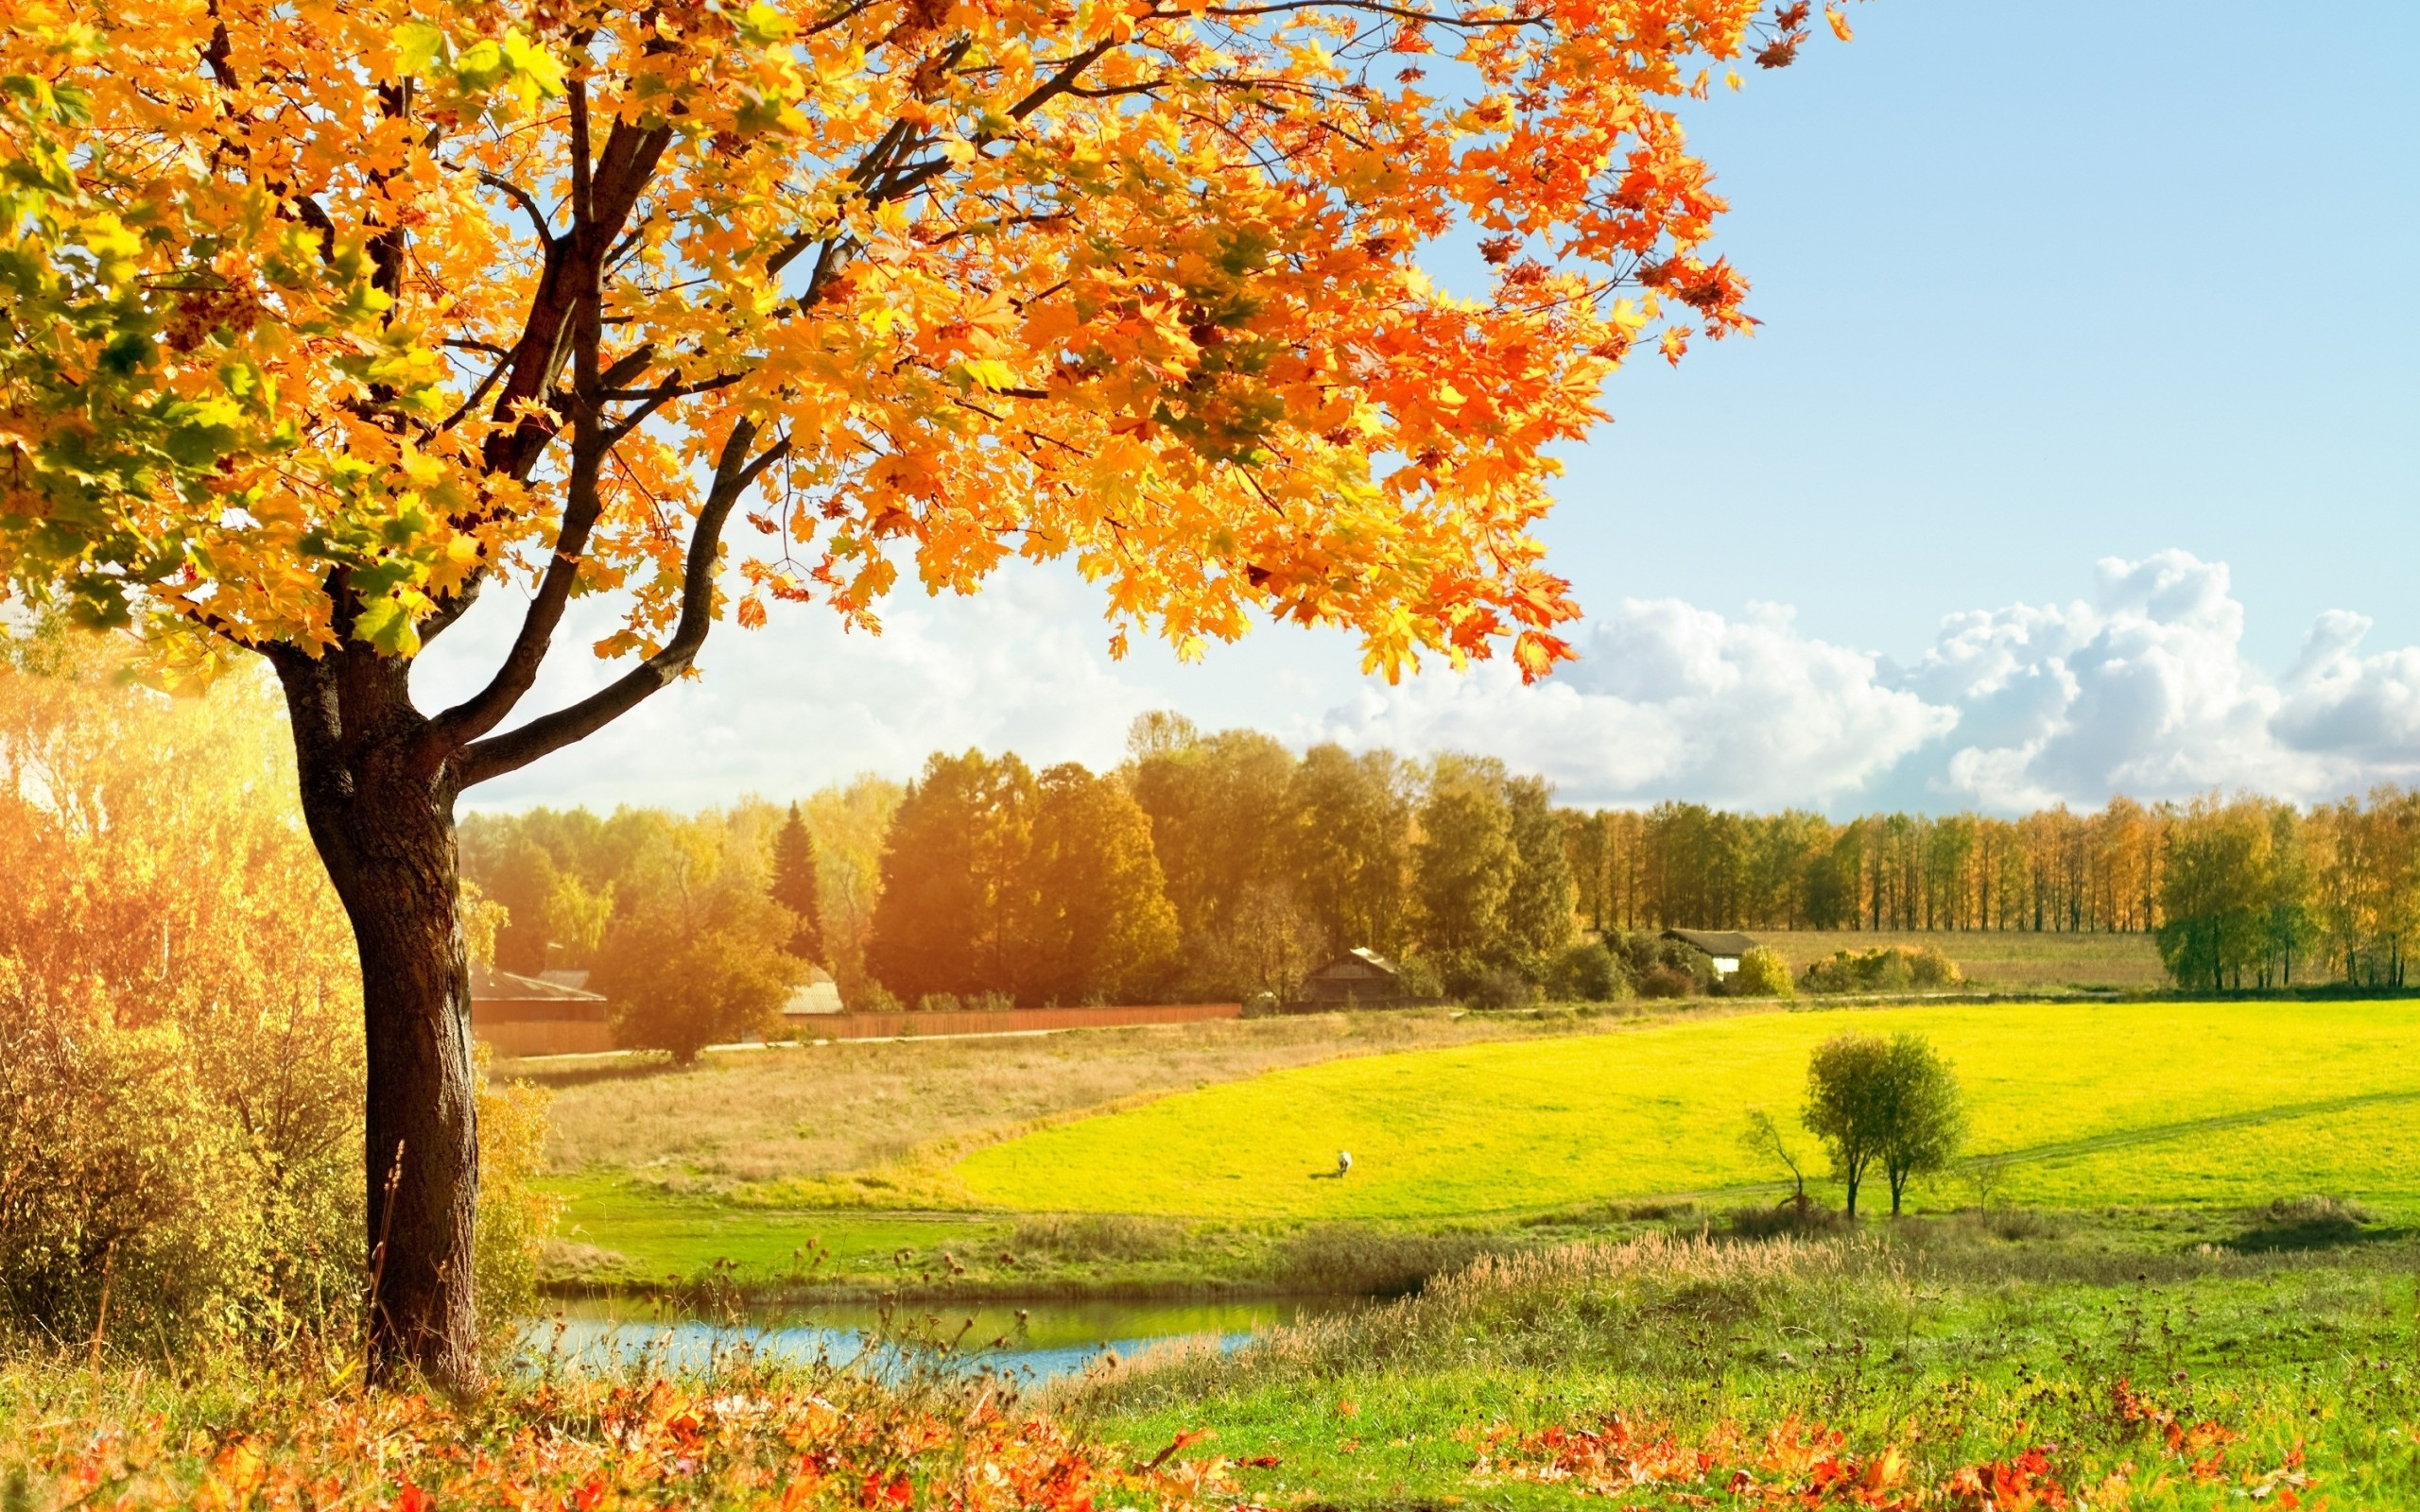 Wallpaper with Tree and Orange Leaves Scenery Free Stock Photo 2560x1600px